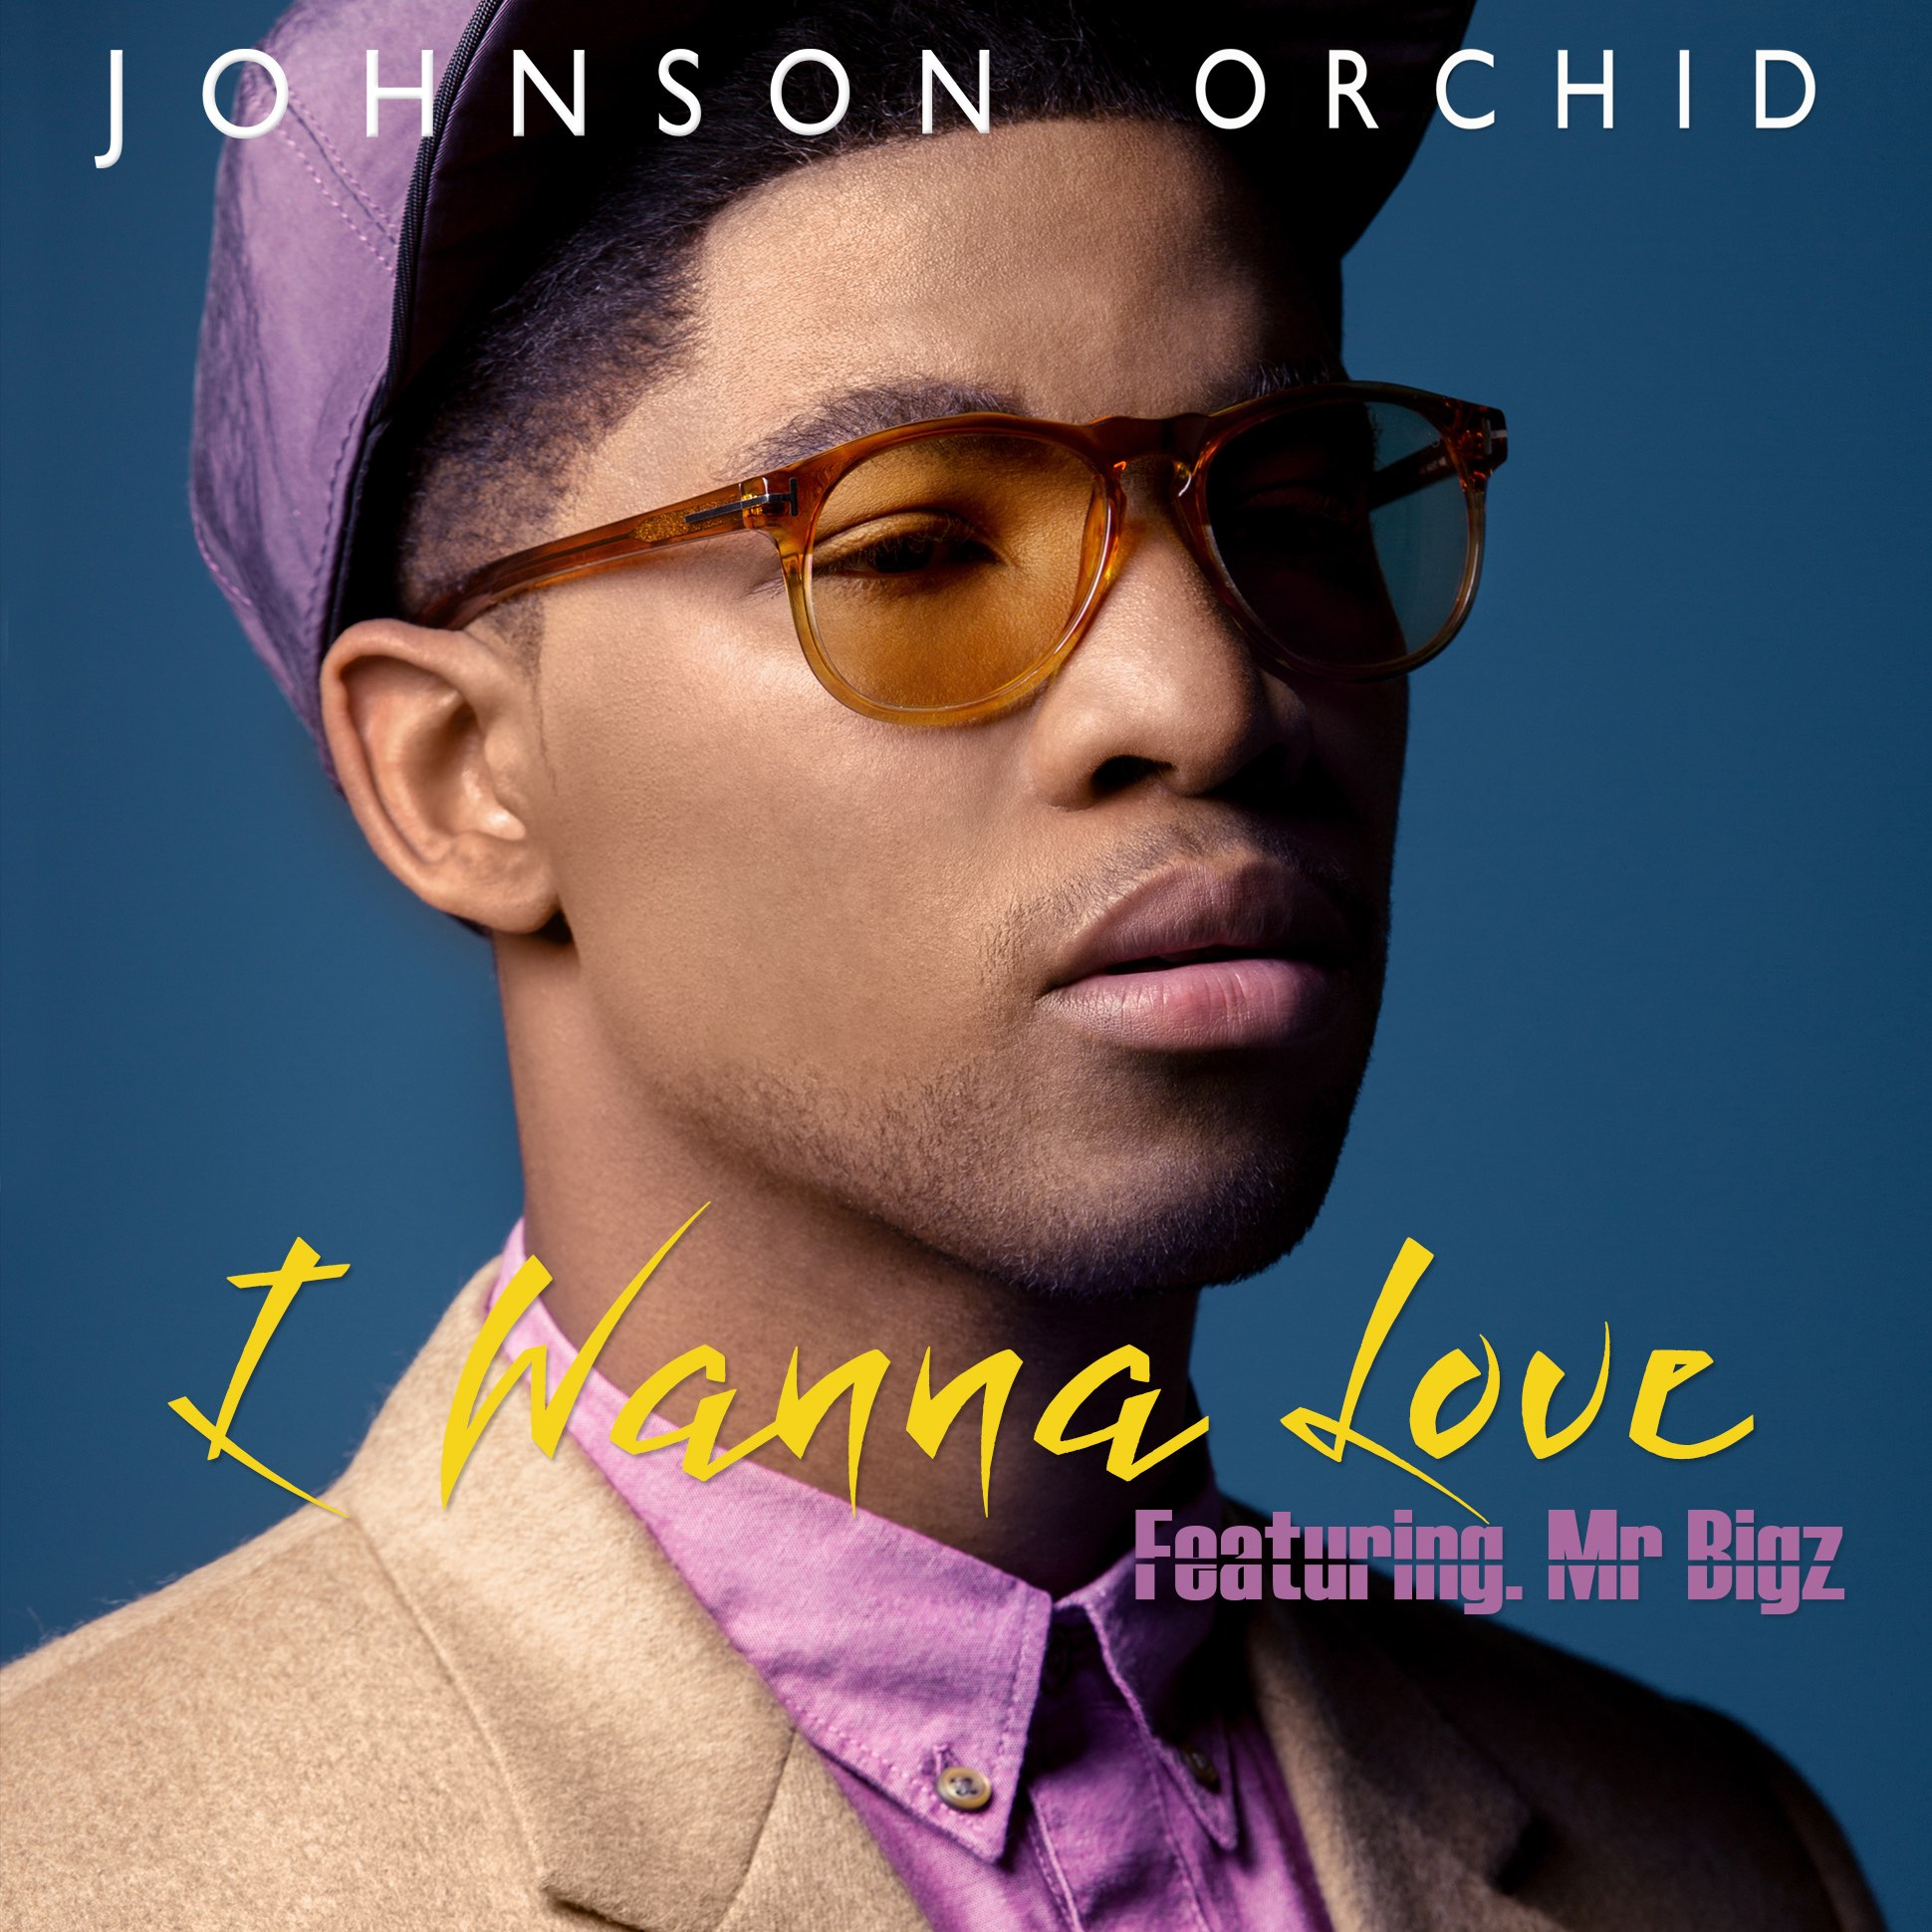 Johnson Orchid I Wanna Love Artwork II